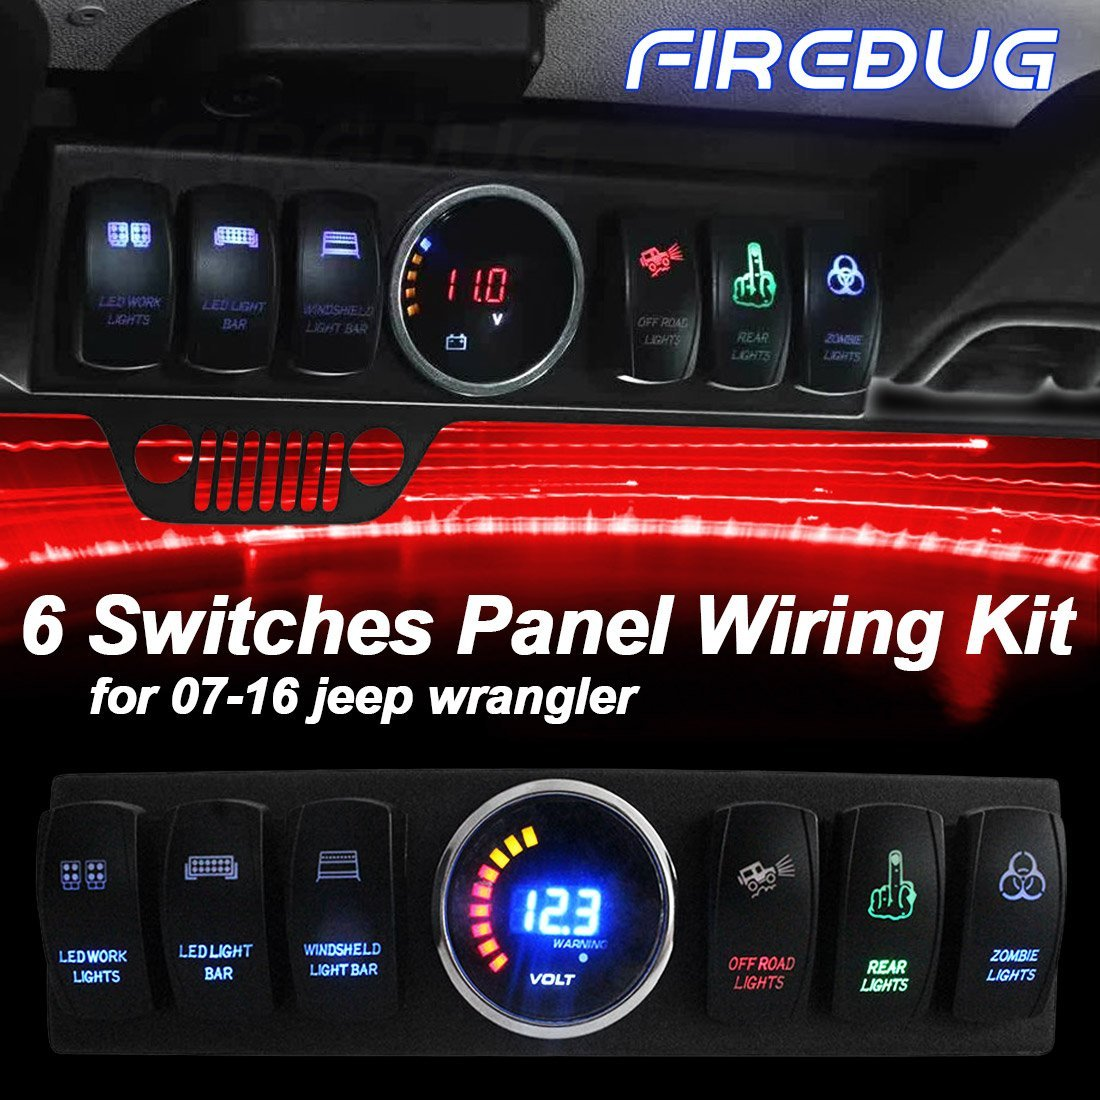 Stereo Wiring Harness For 2016 Jeep Wrangler